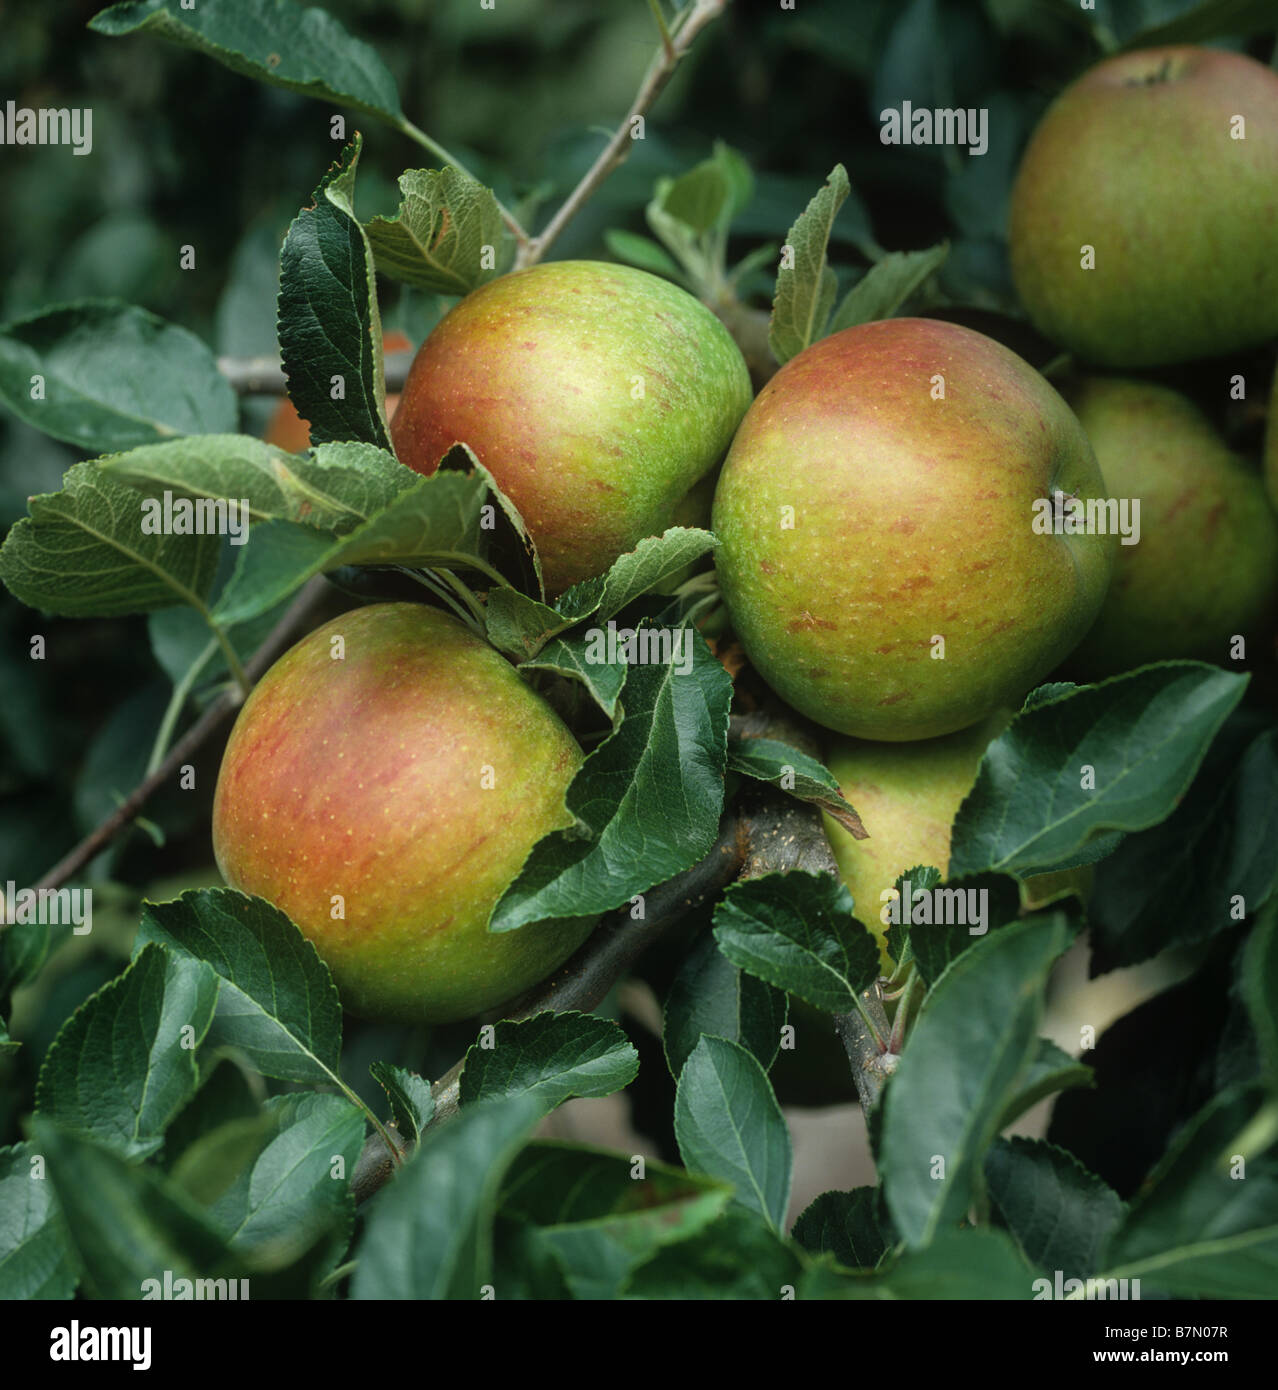 Ripe mature Coxs apple fruit on the tree Oxfordshire - Stock Image